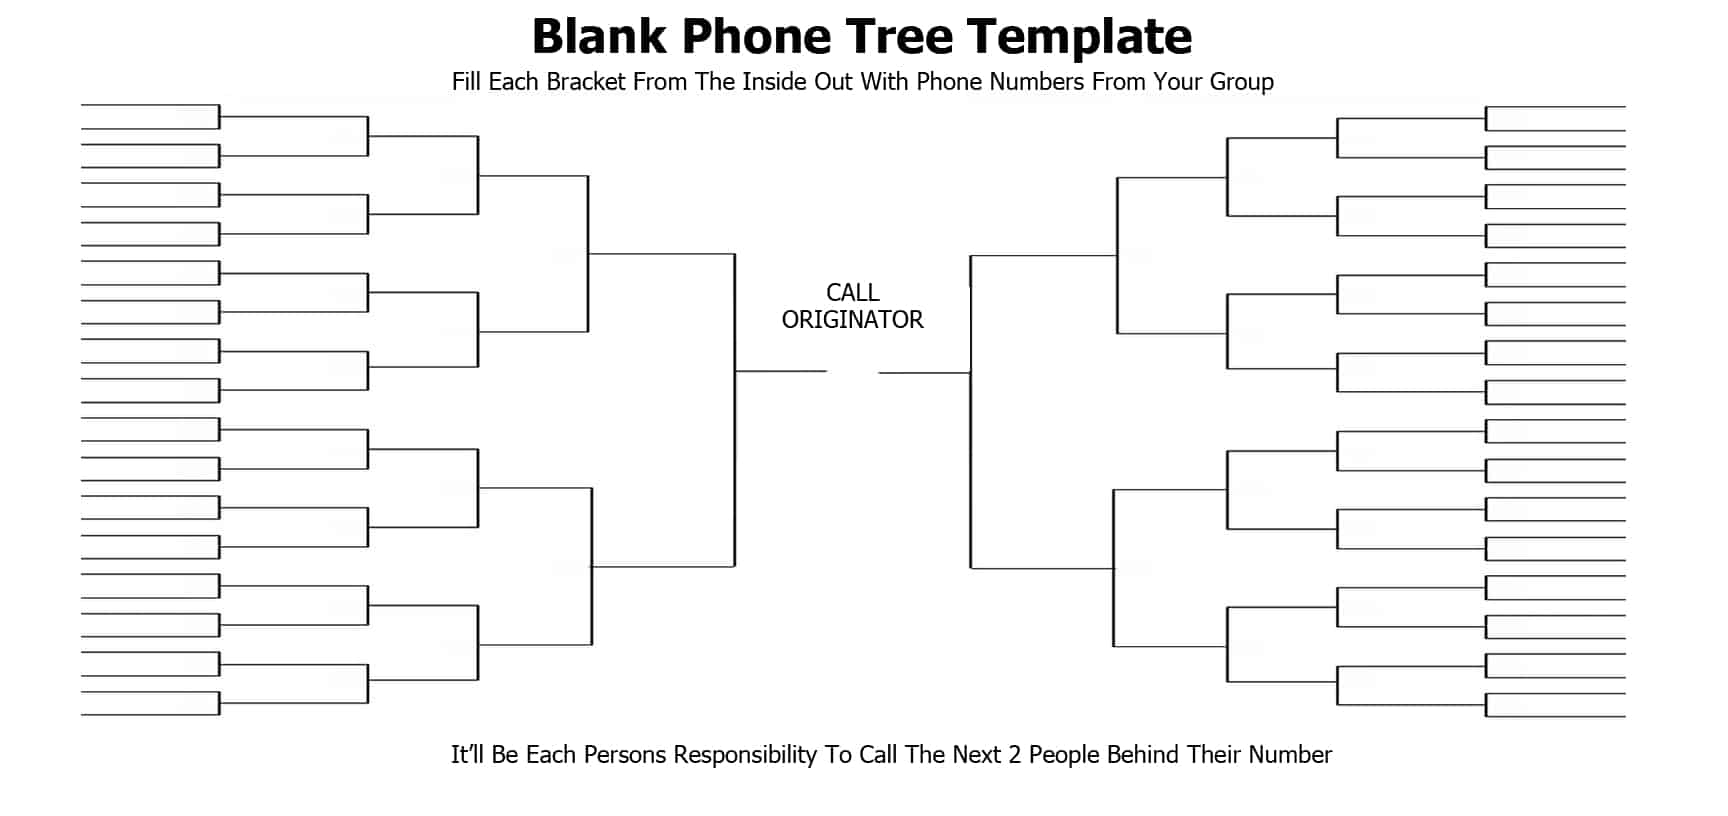 5 free phone tree templates word excel pdf formats for Employee tree template